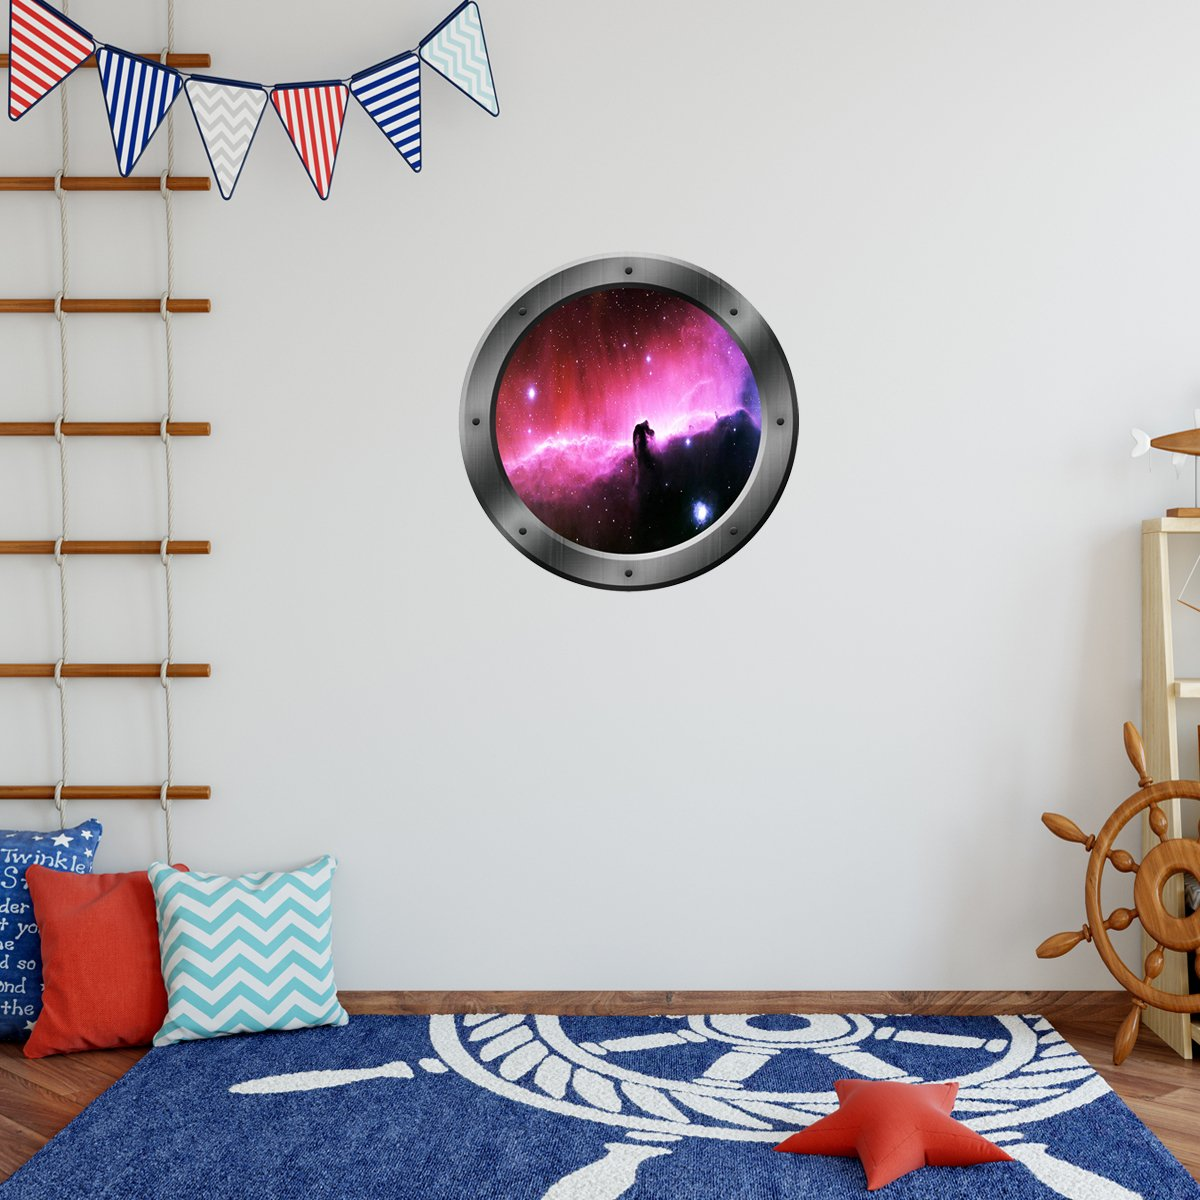 VWAQ Galaxy Porthole Window Peel and Stick Vinyl Wall Decal - PS10 - VWAQ Vinyl Wall Art Quotes and Prints